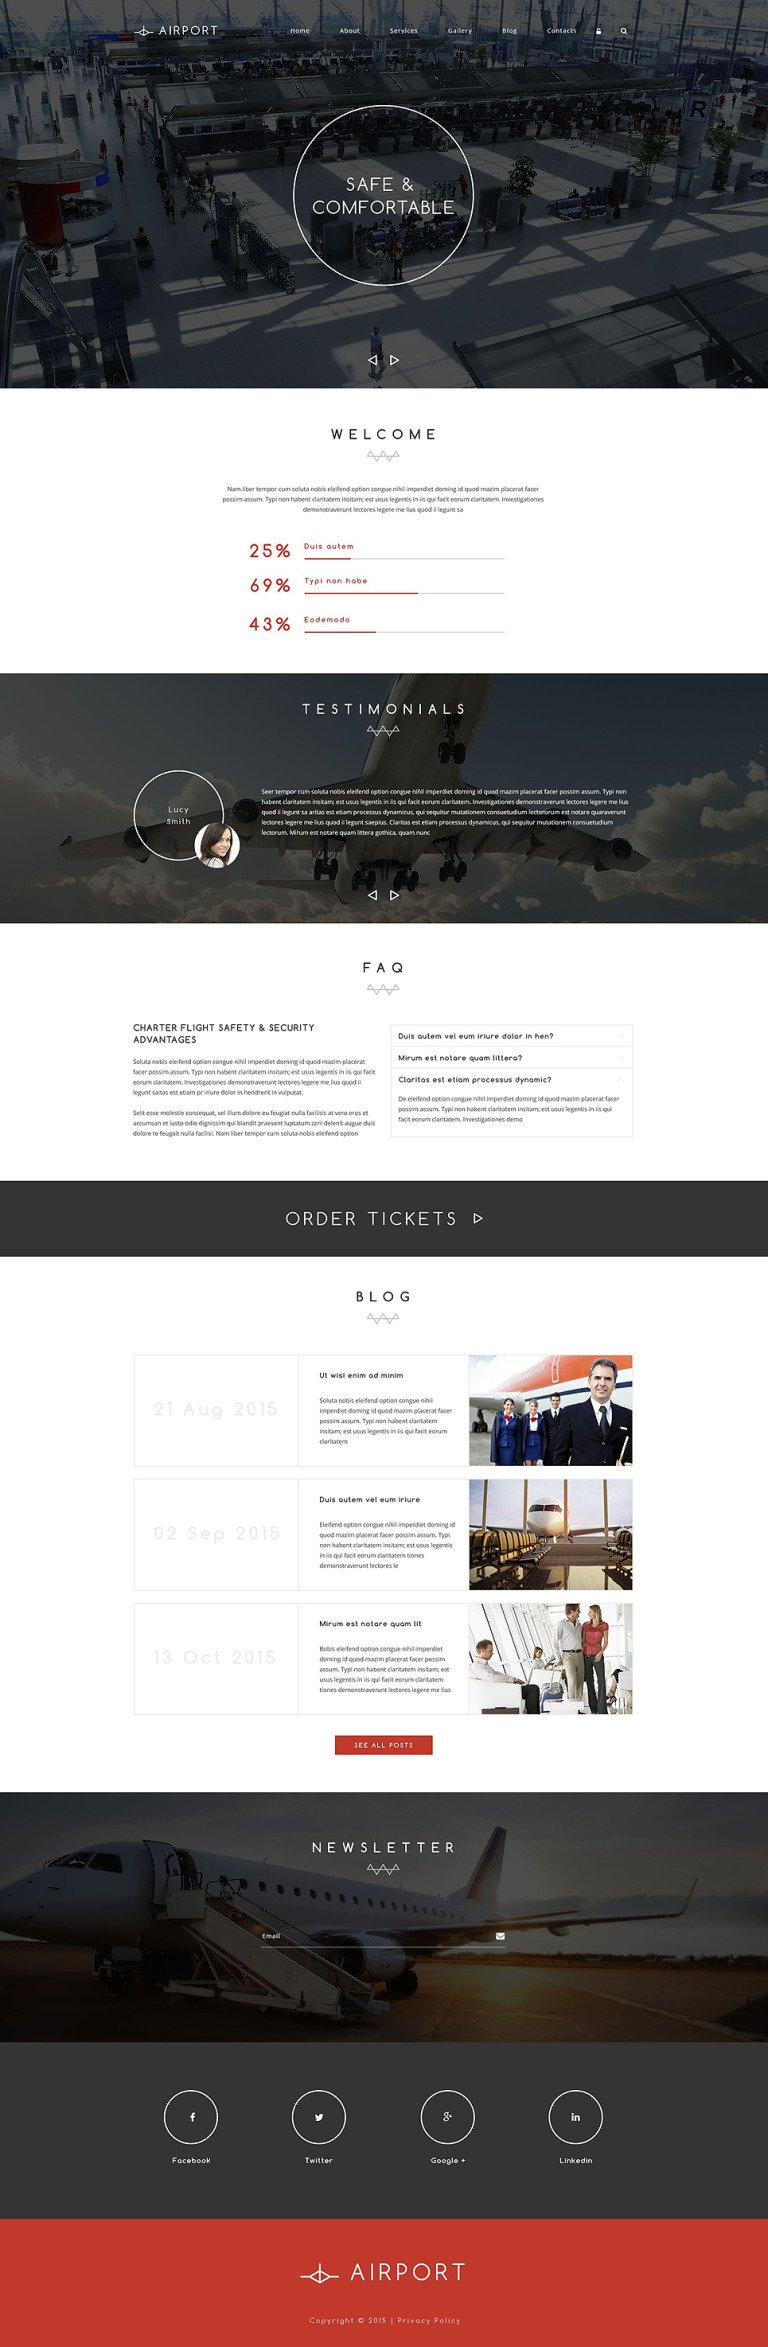 Airline Service Drupal Template New Screenshots BIG